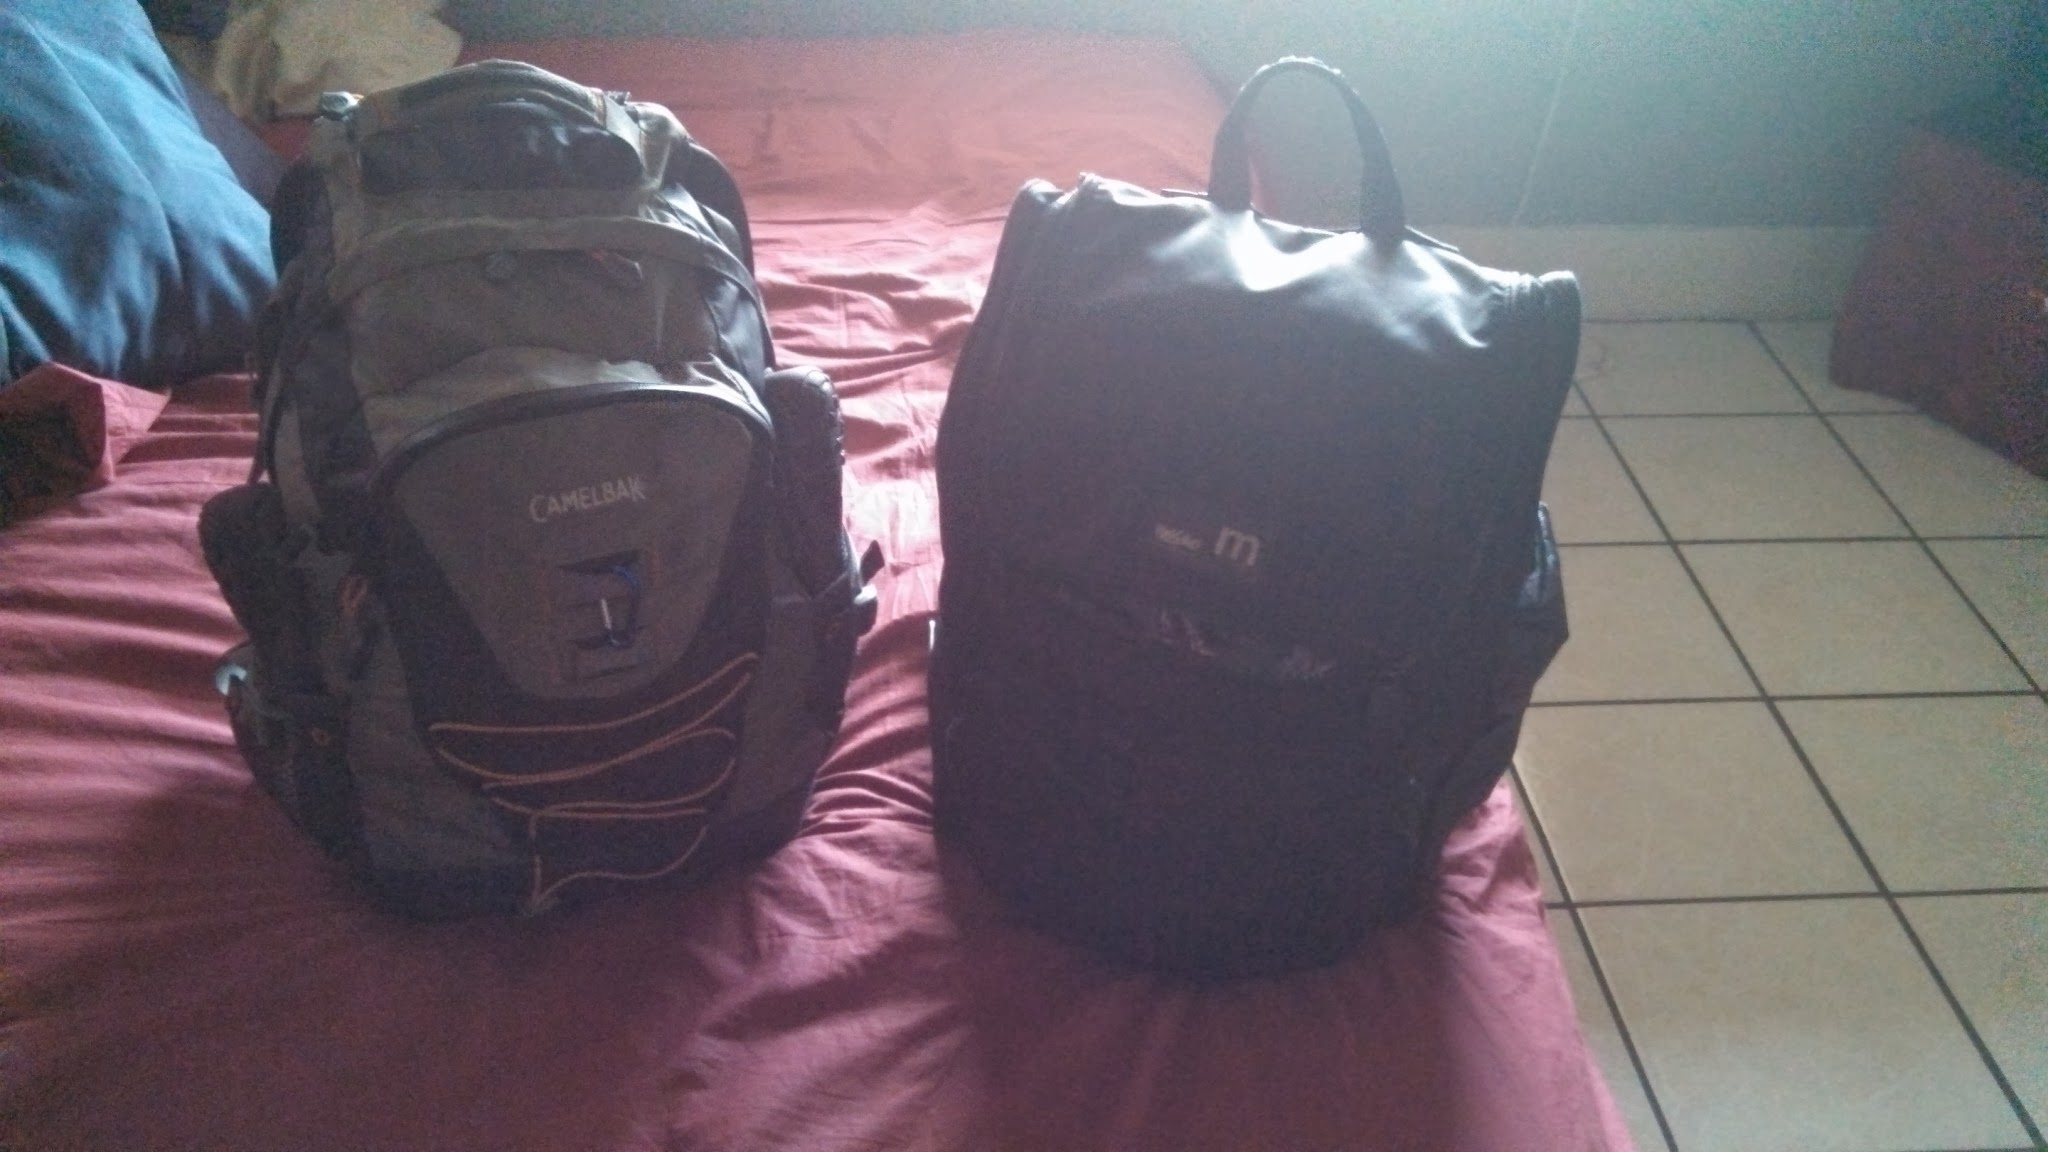 bags for 12 weeks in Europe